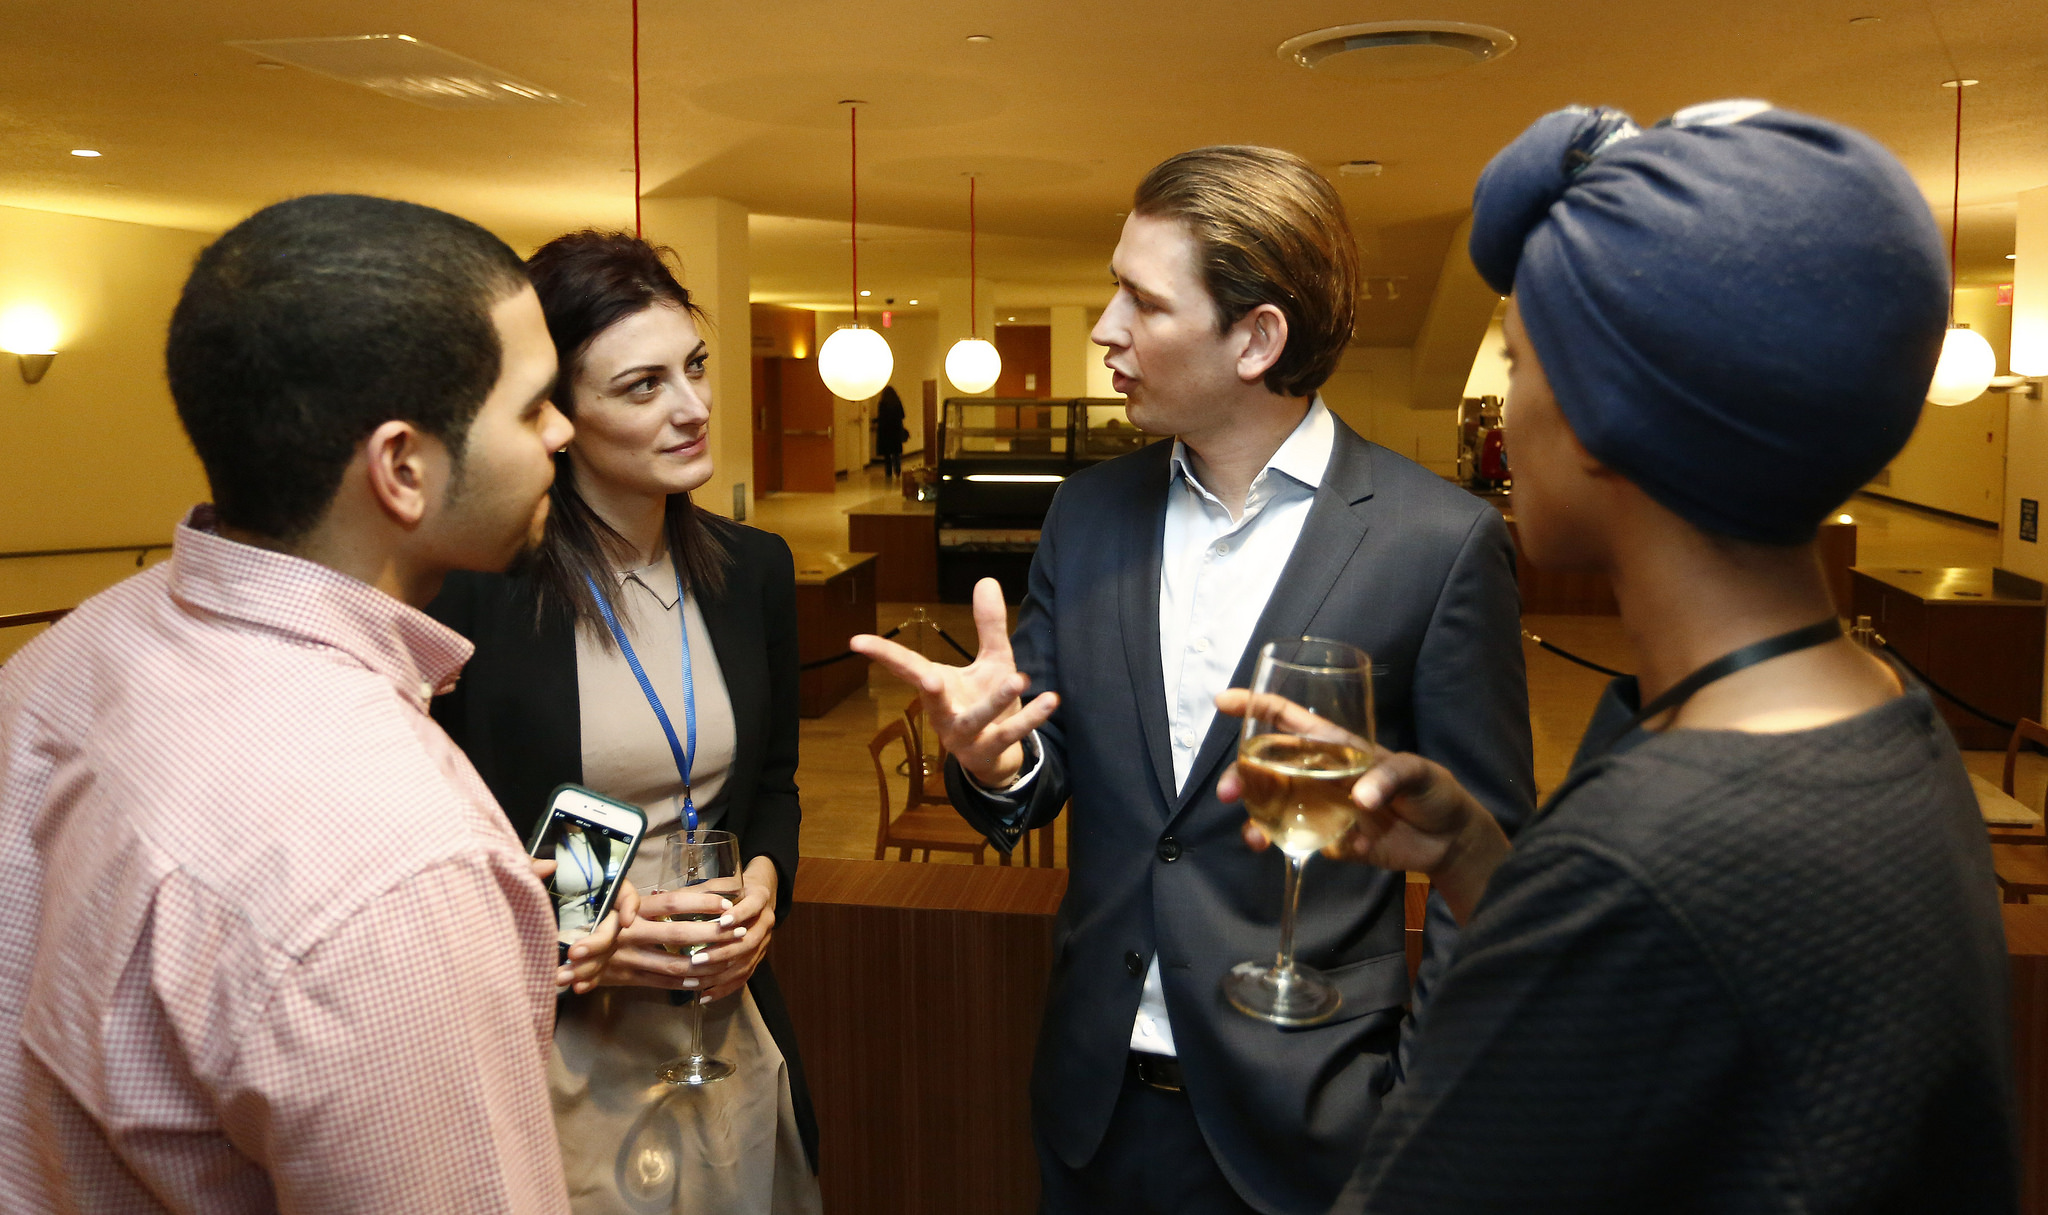 Austrian Foreign Minister Sebastian Kurz at the reopening of Cafe Vienna at the United Nations. Photo: Dragan Tatic.